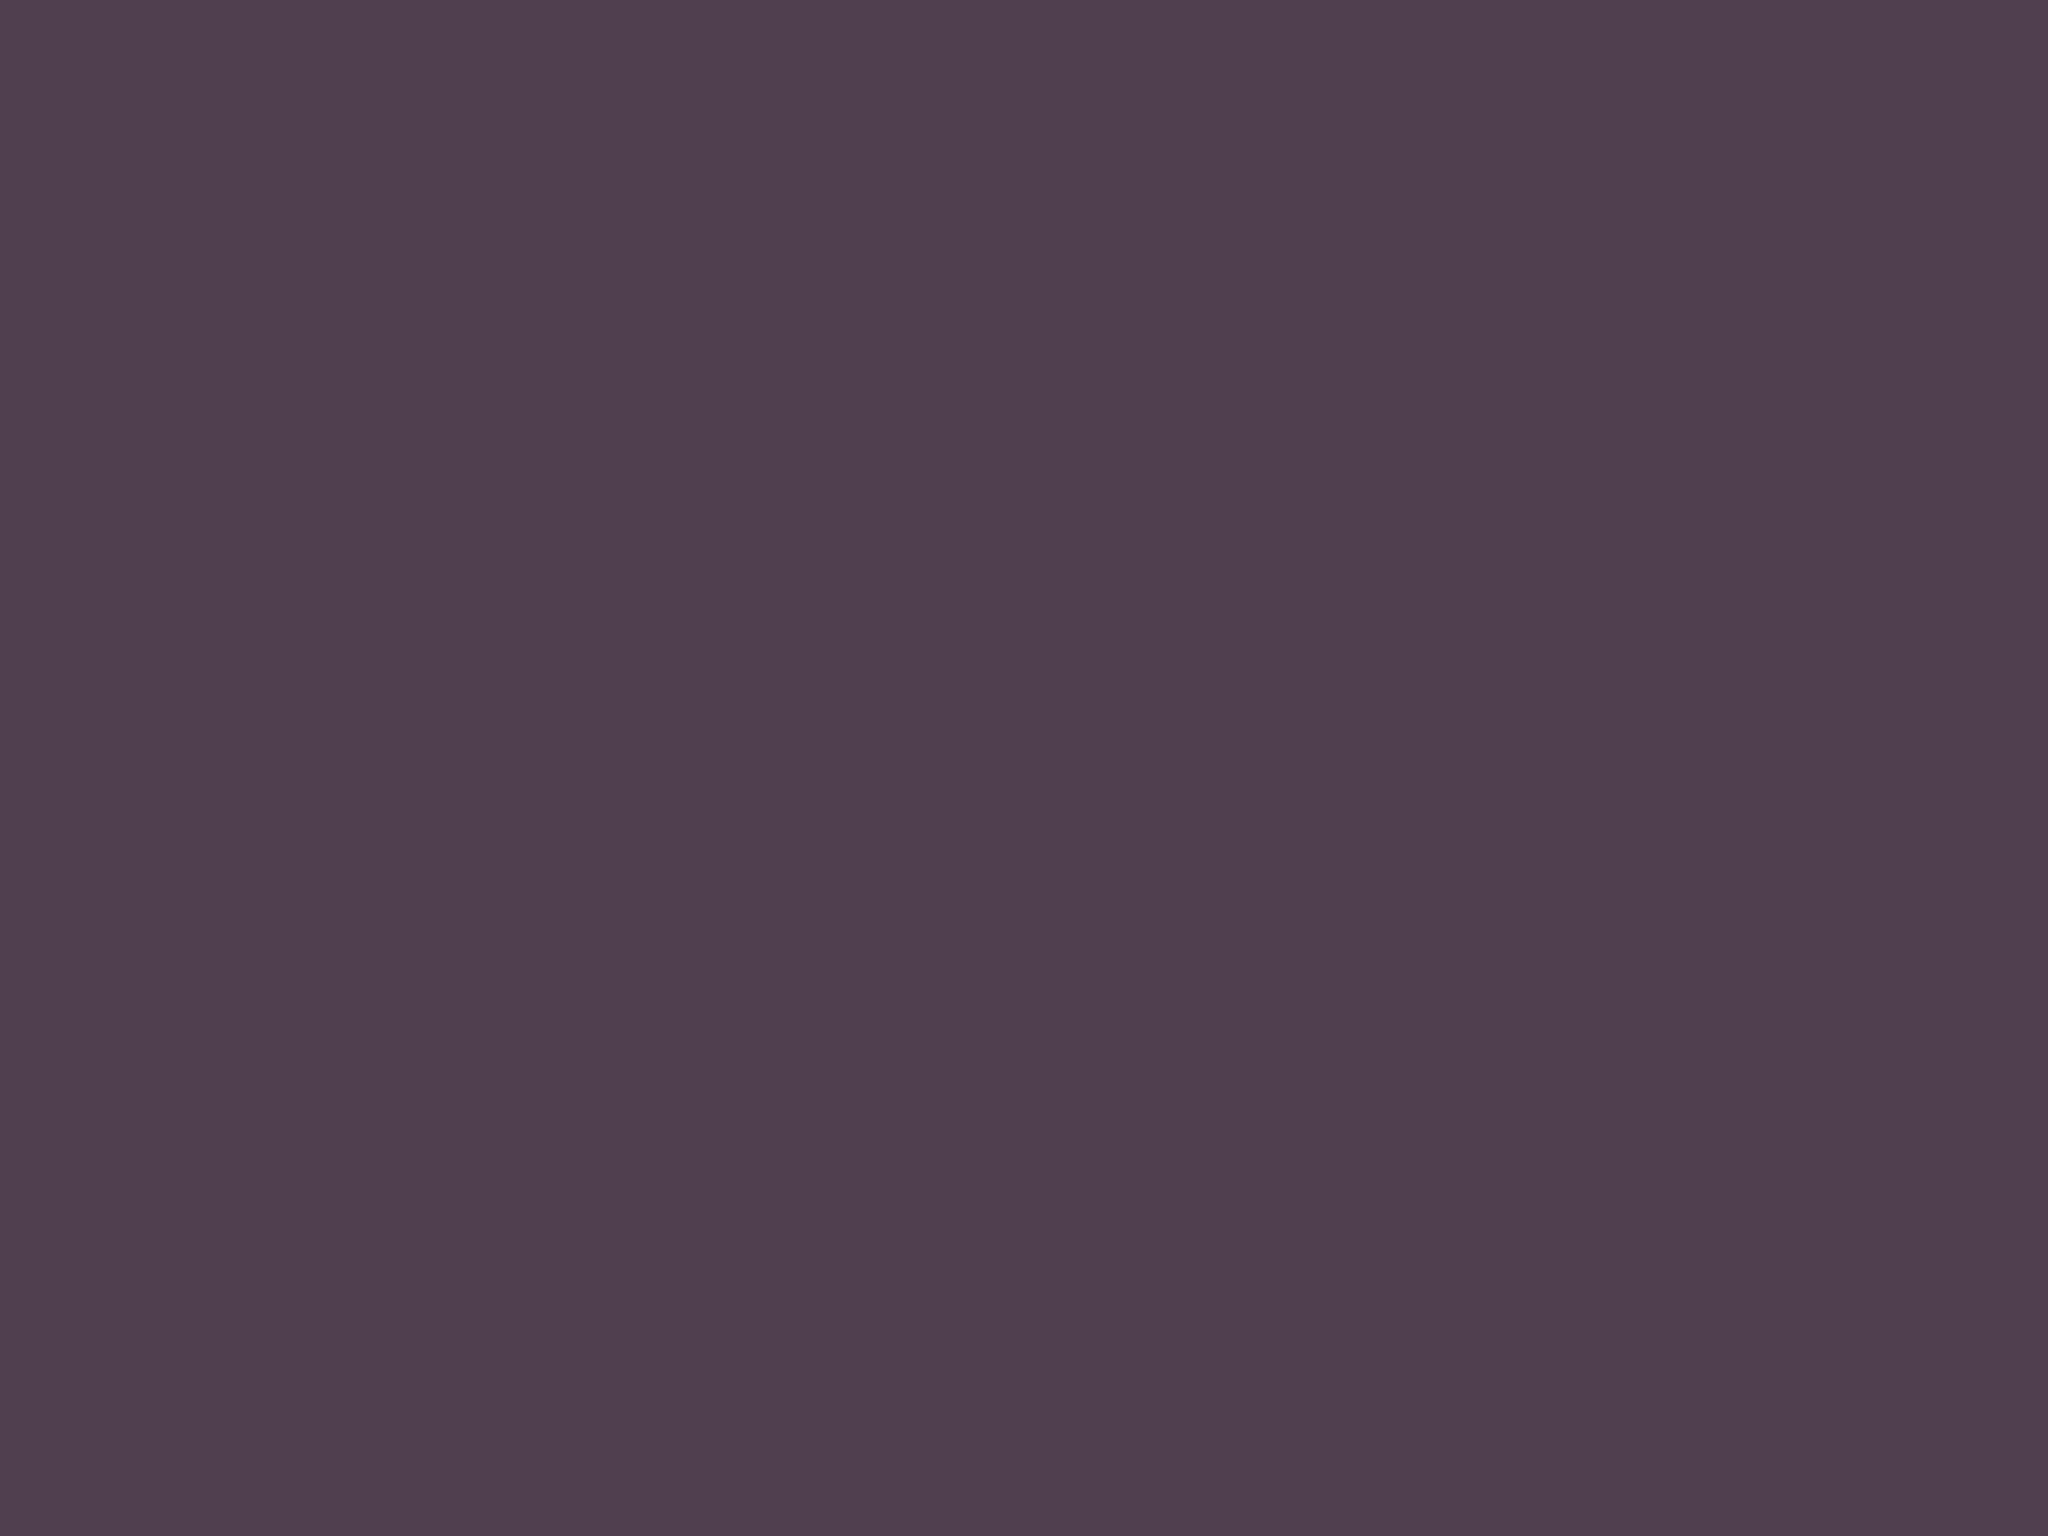 2048x1536 Purple Taupe Solid Color Background